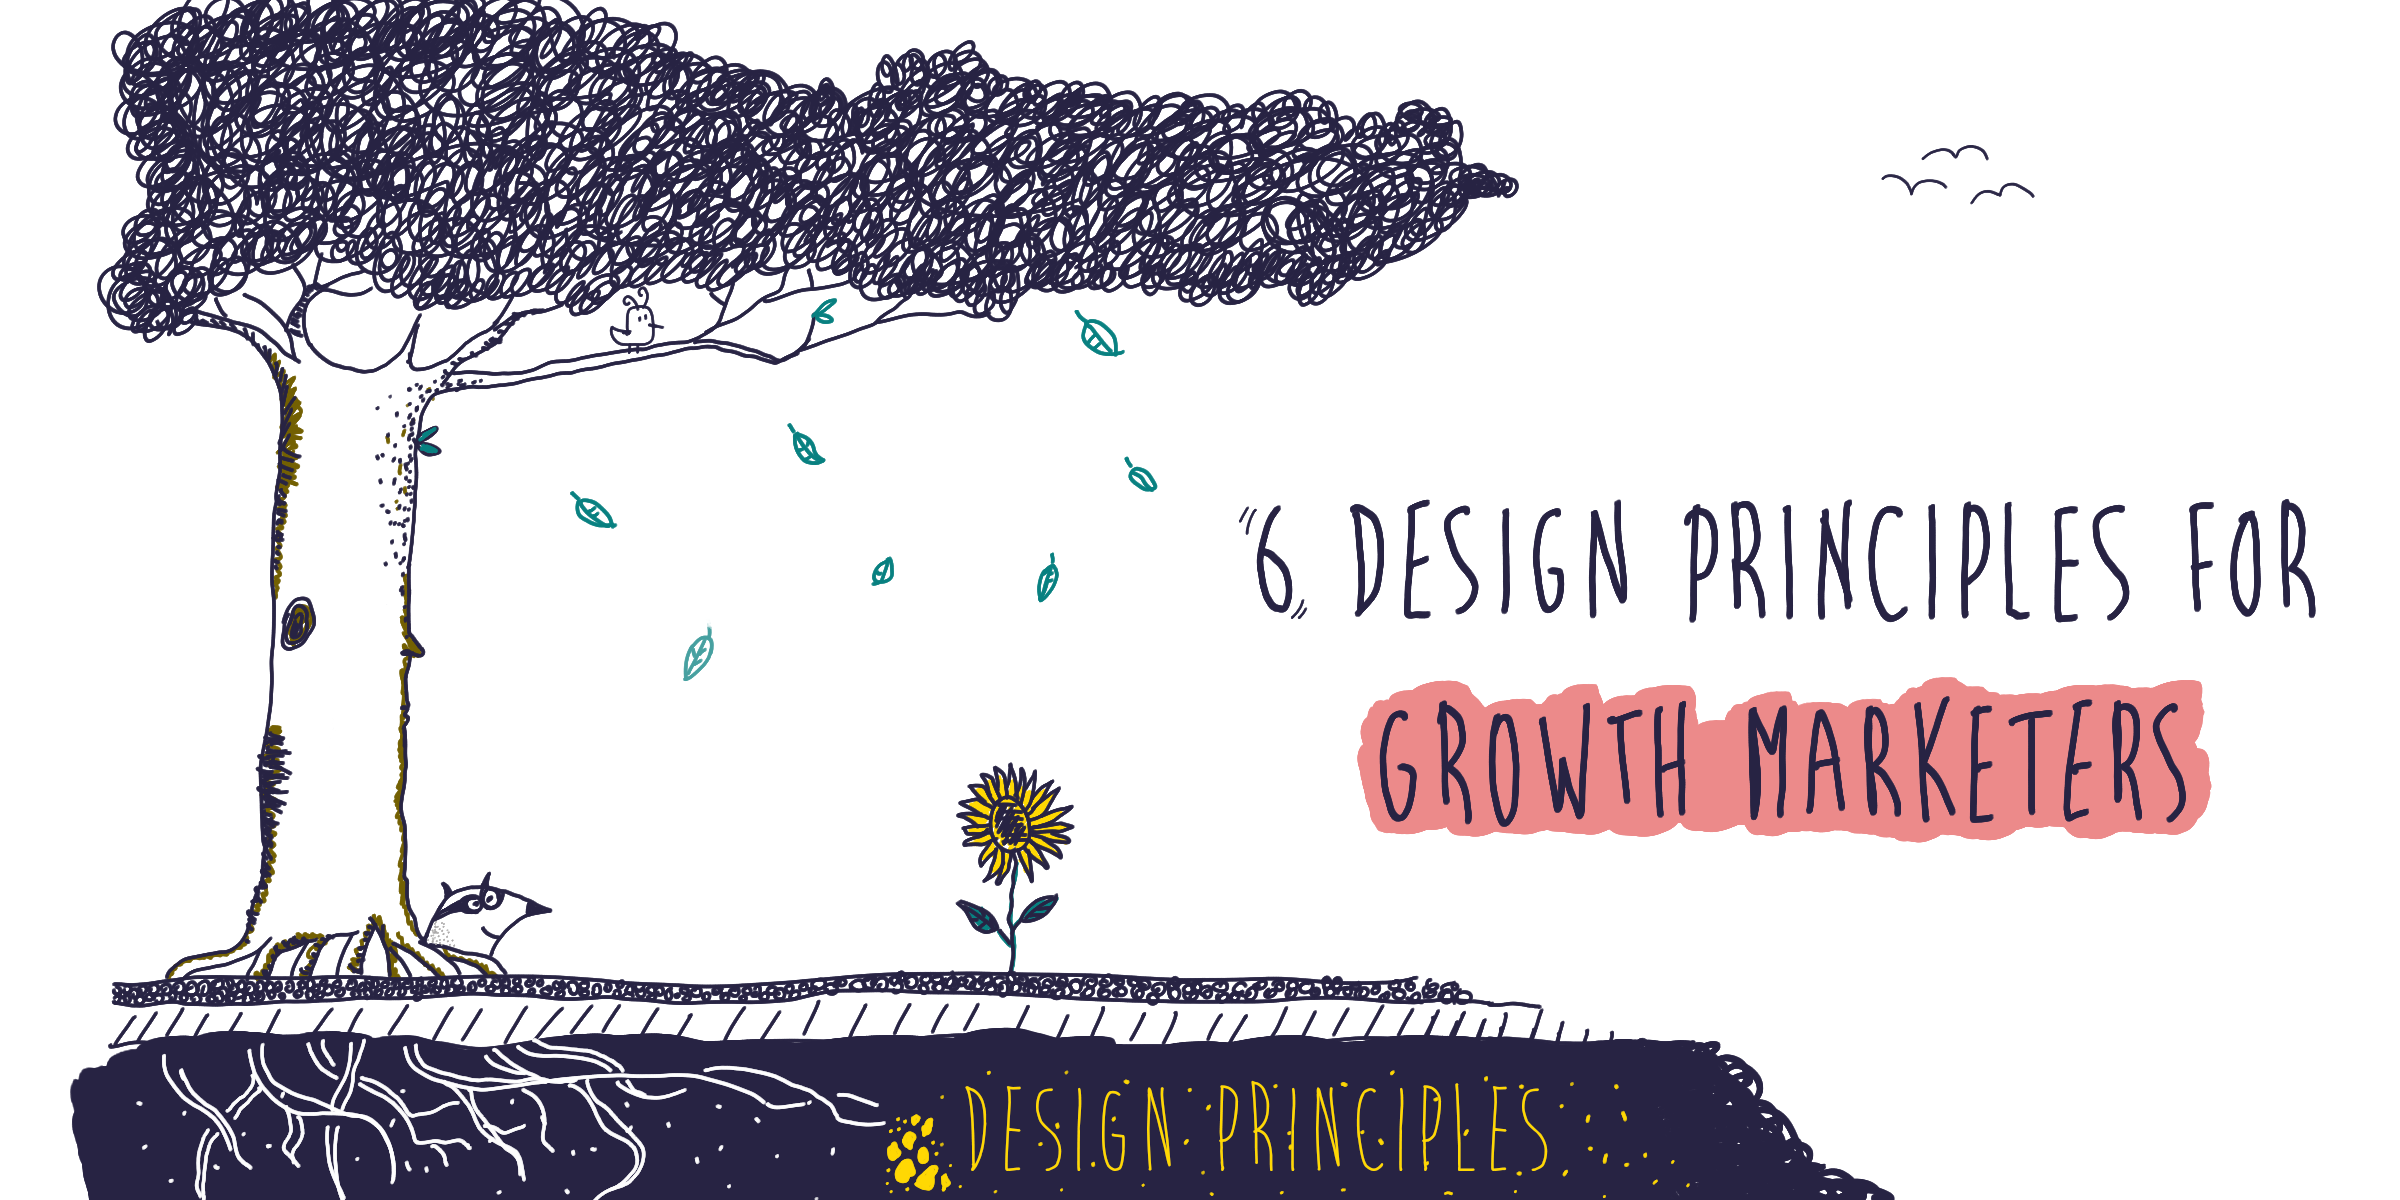 header design principles for growth